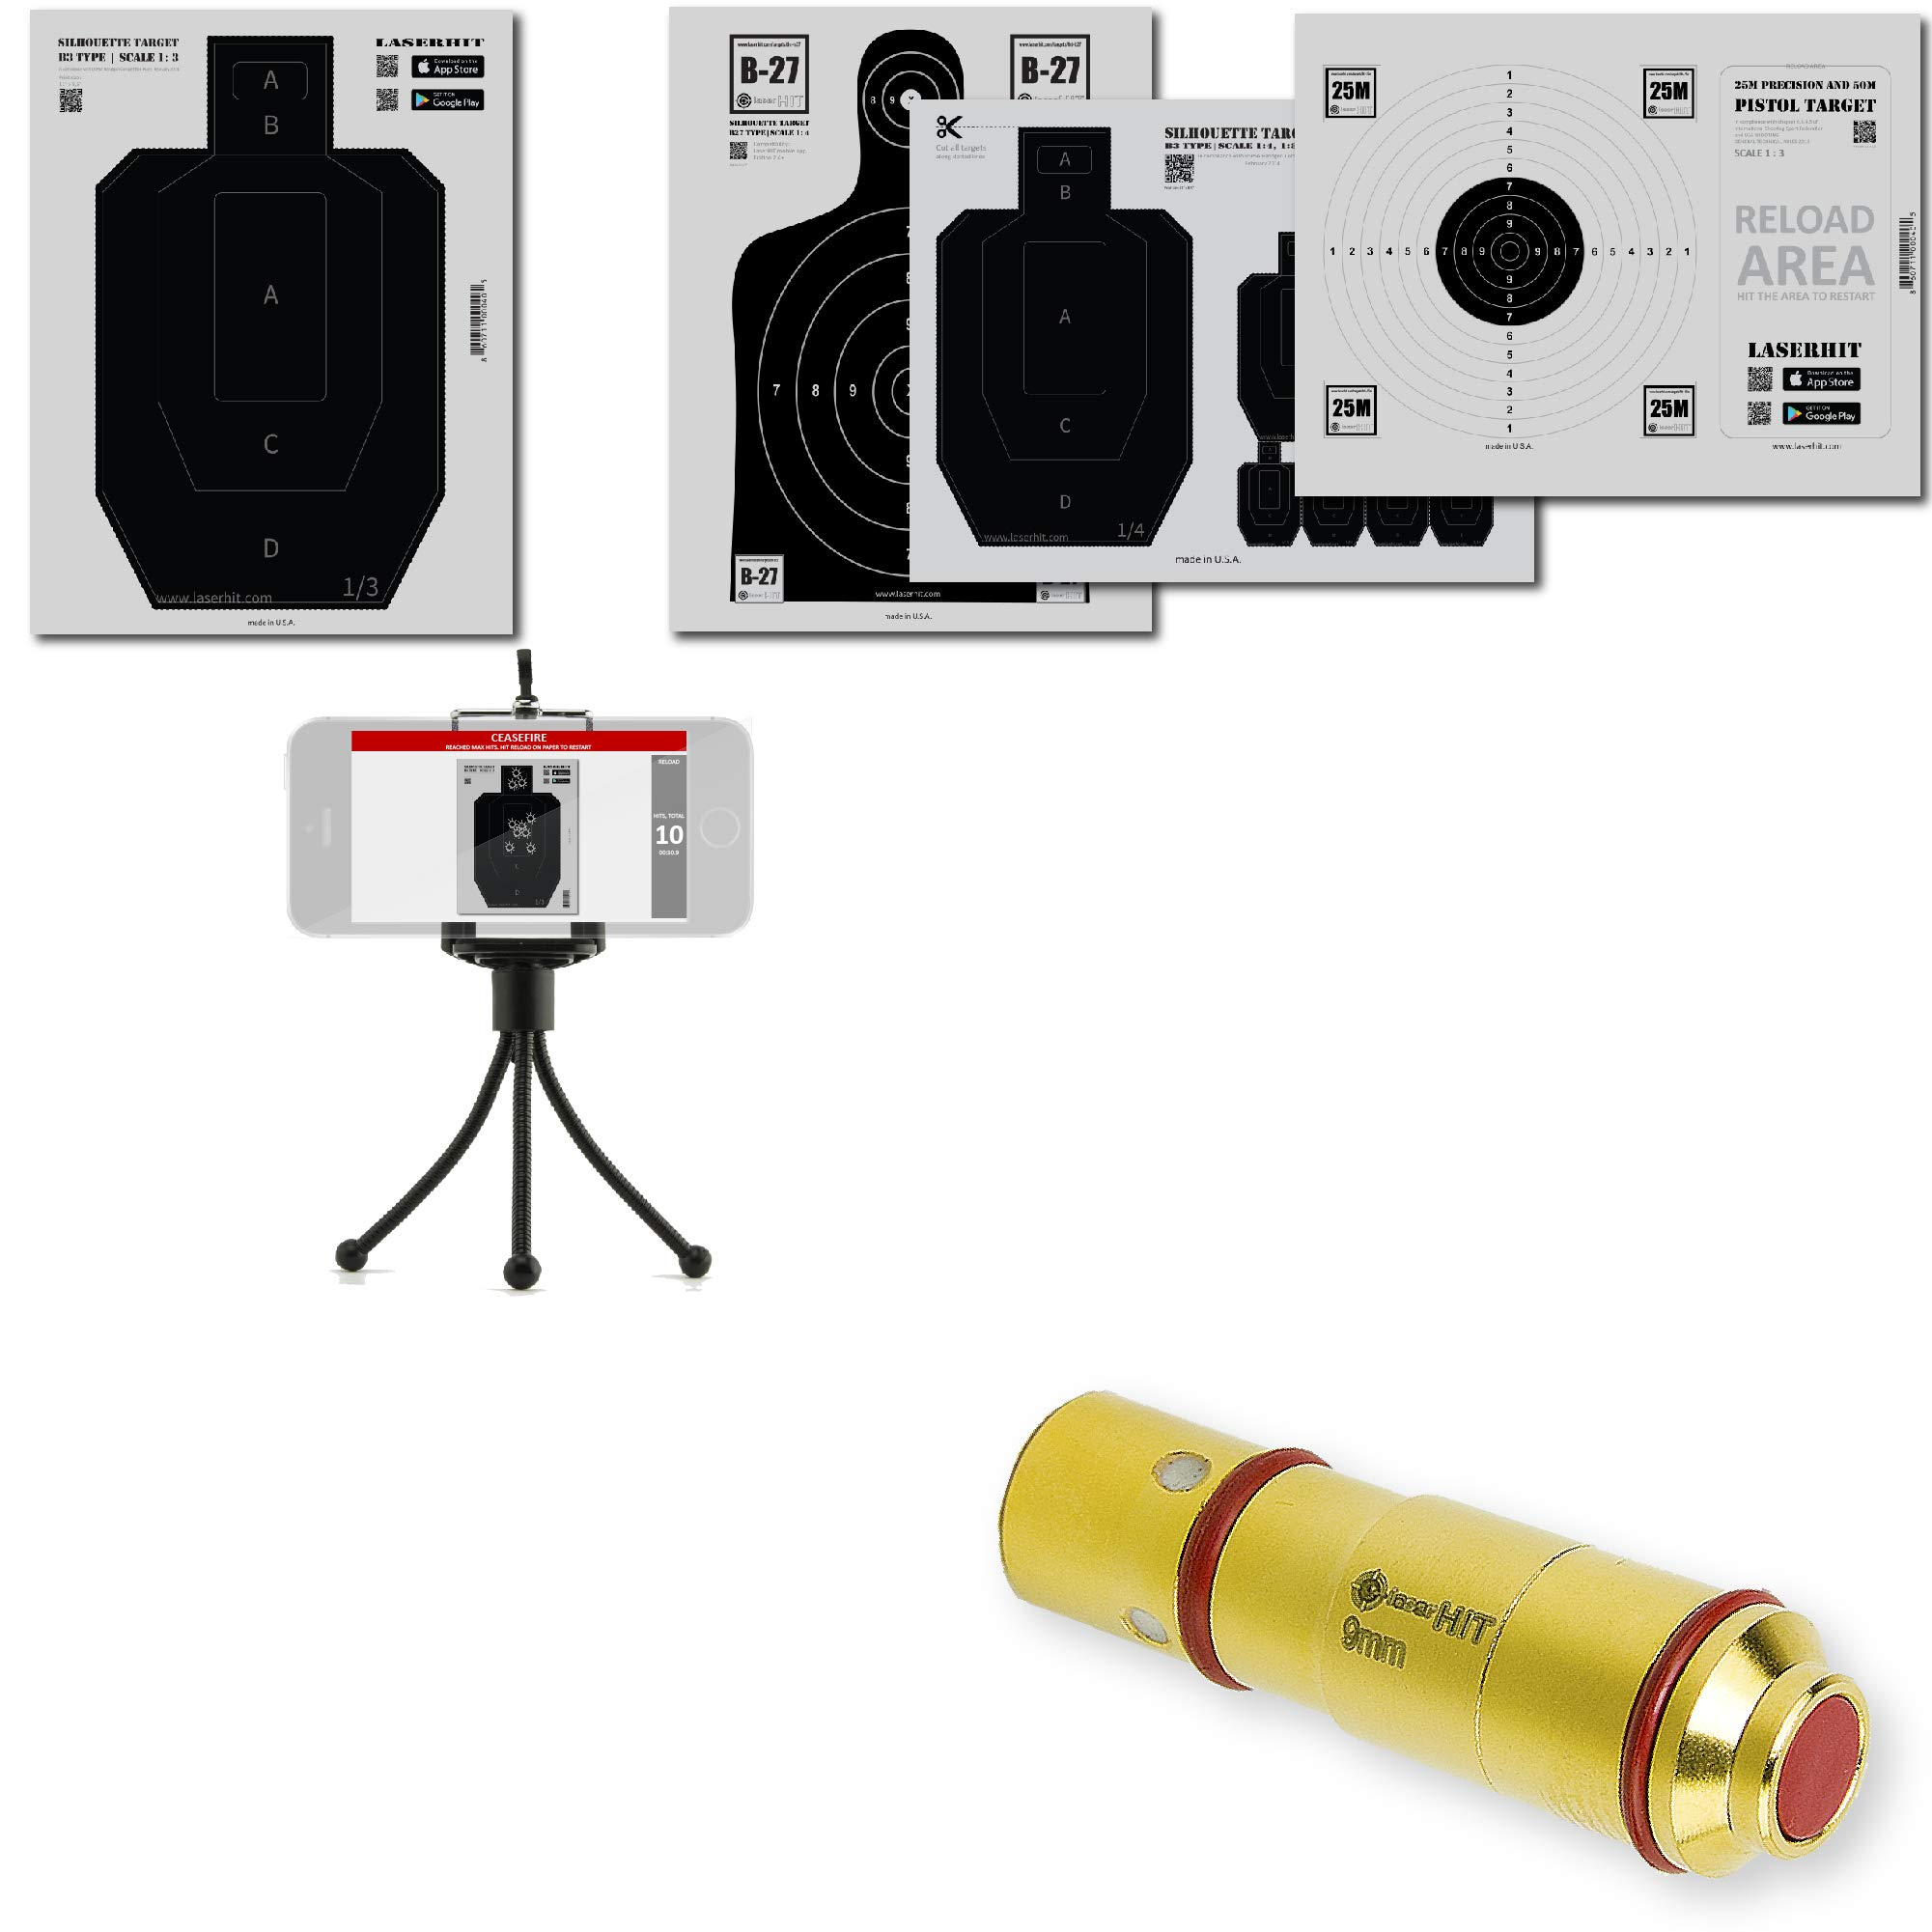 LaserHIT Dry Fire Training Kit (iOS, 9mm/HD Mini)